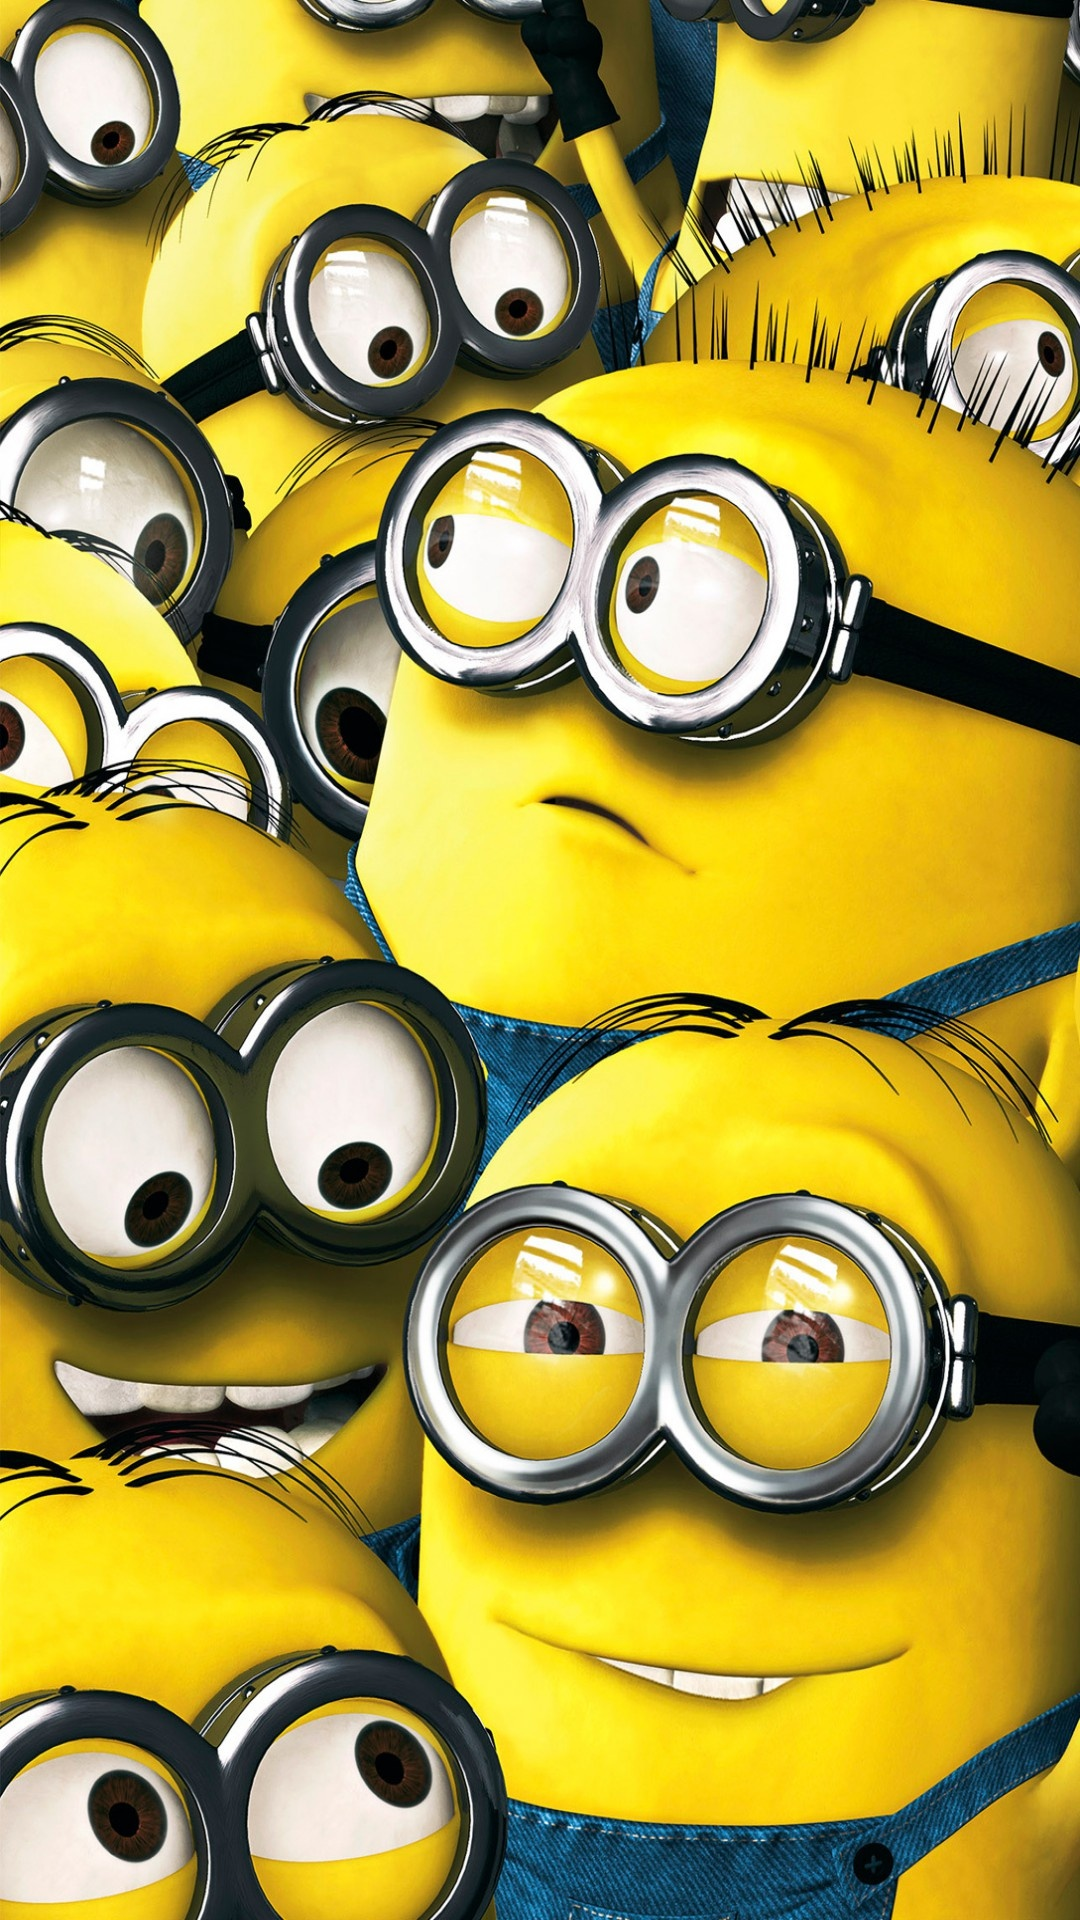 minions hd wallpapers for iphone